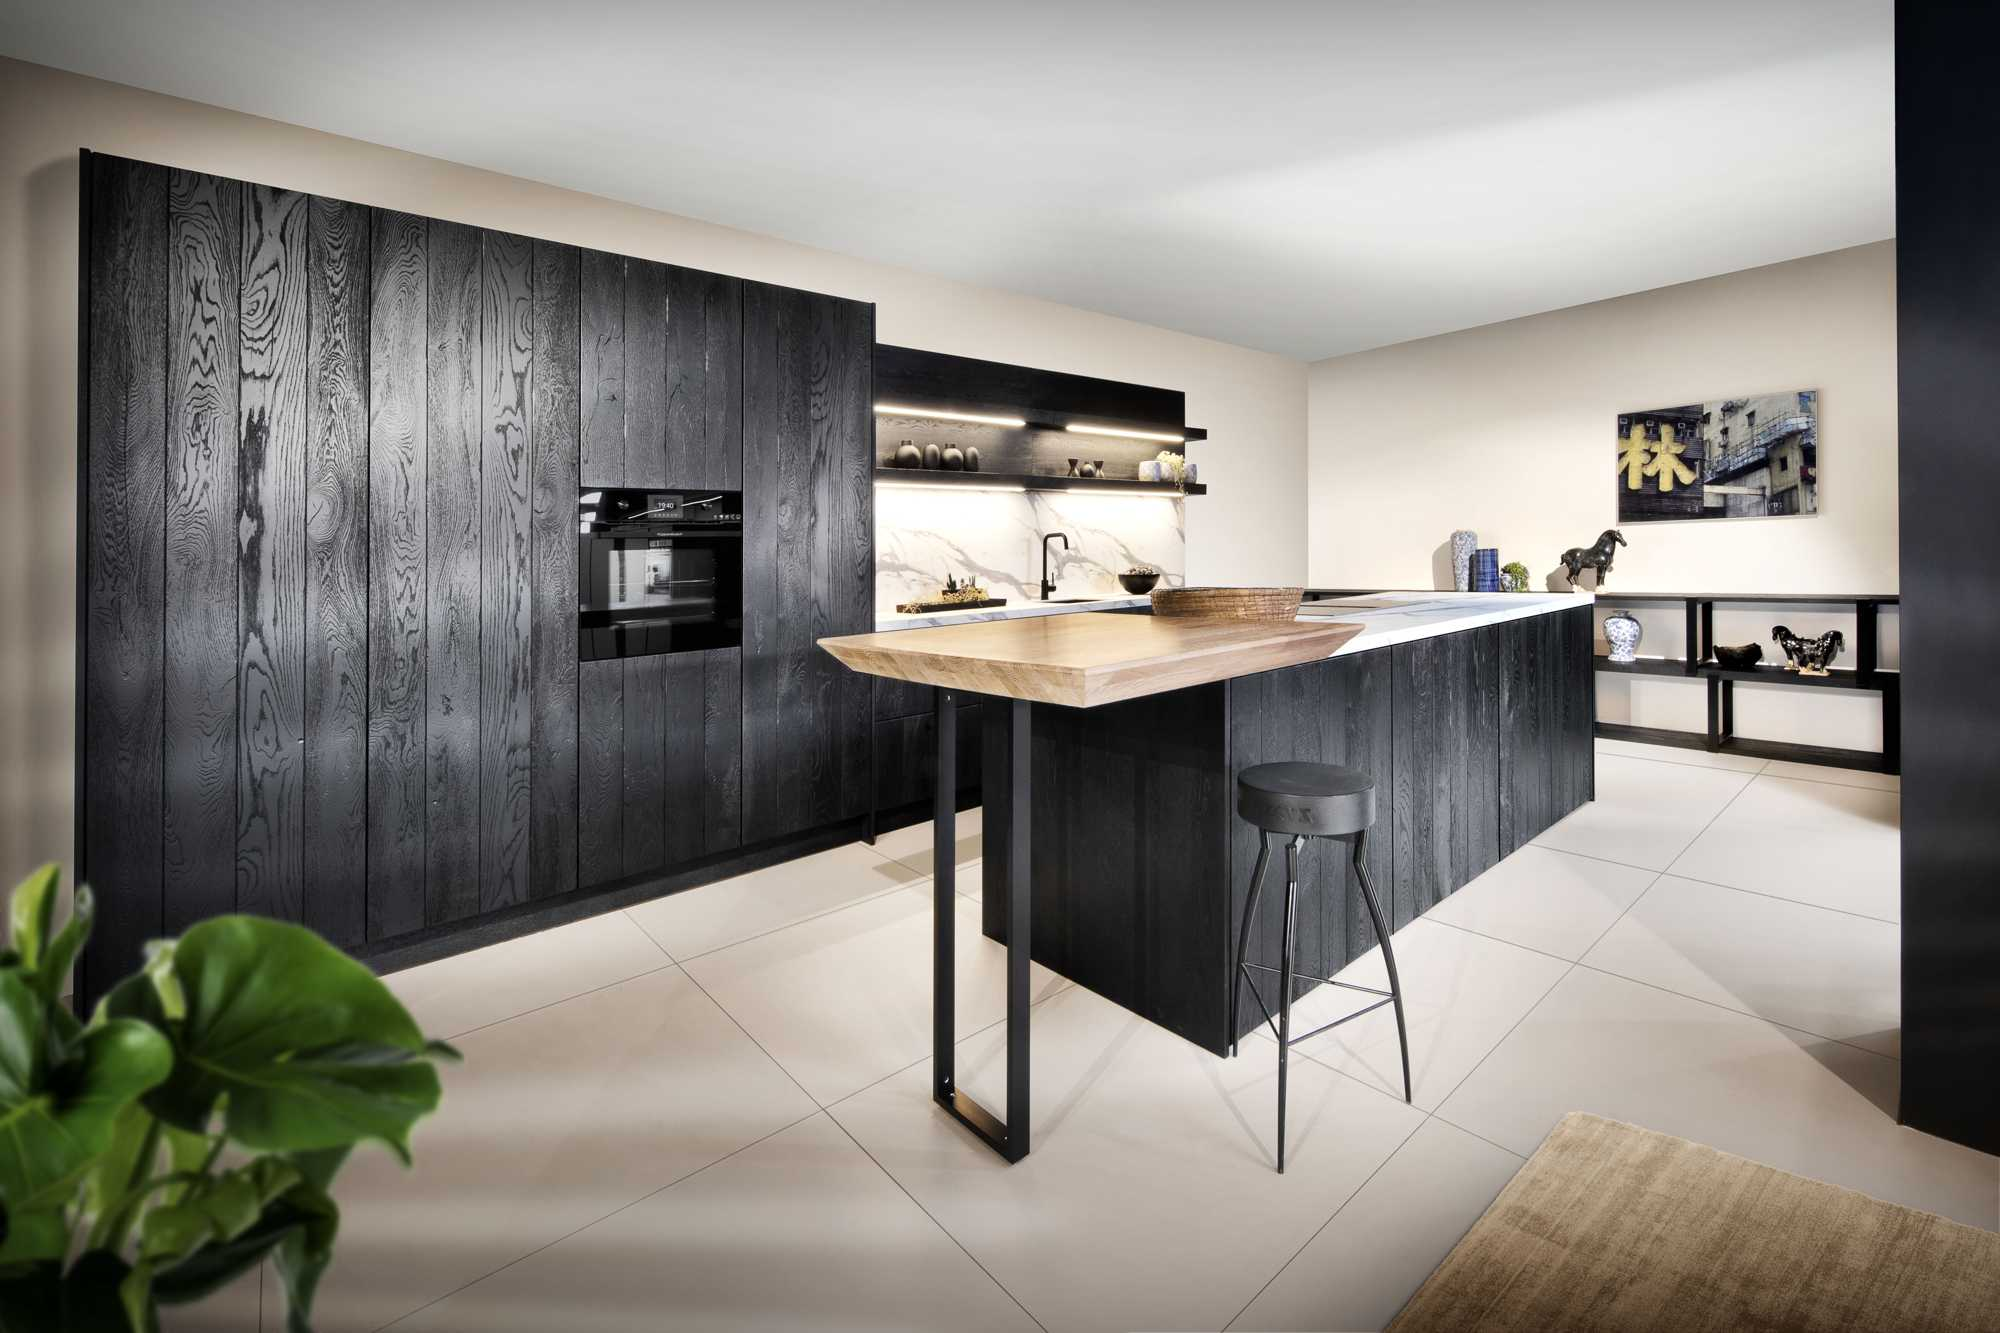 German Rotpunkt Row Black Kitchen with Industrial Style shelving system